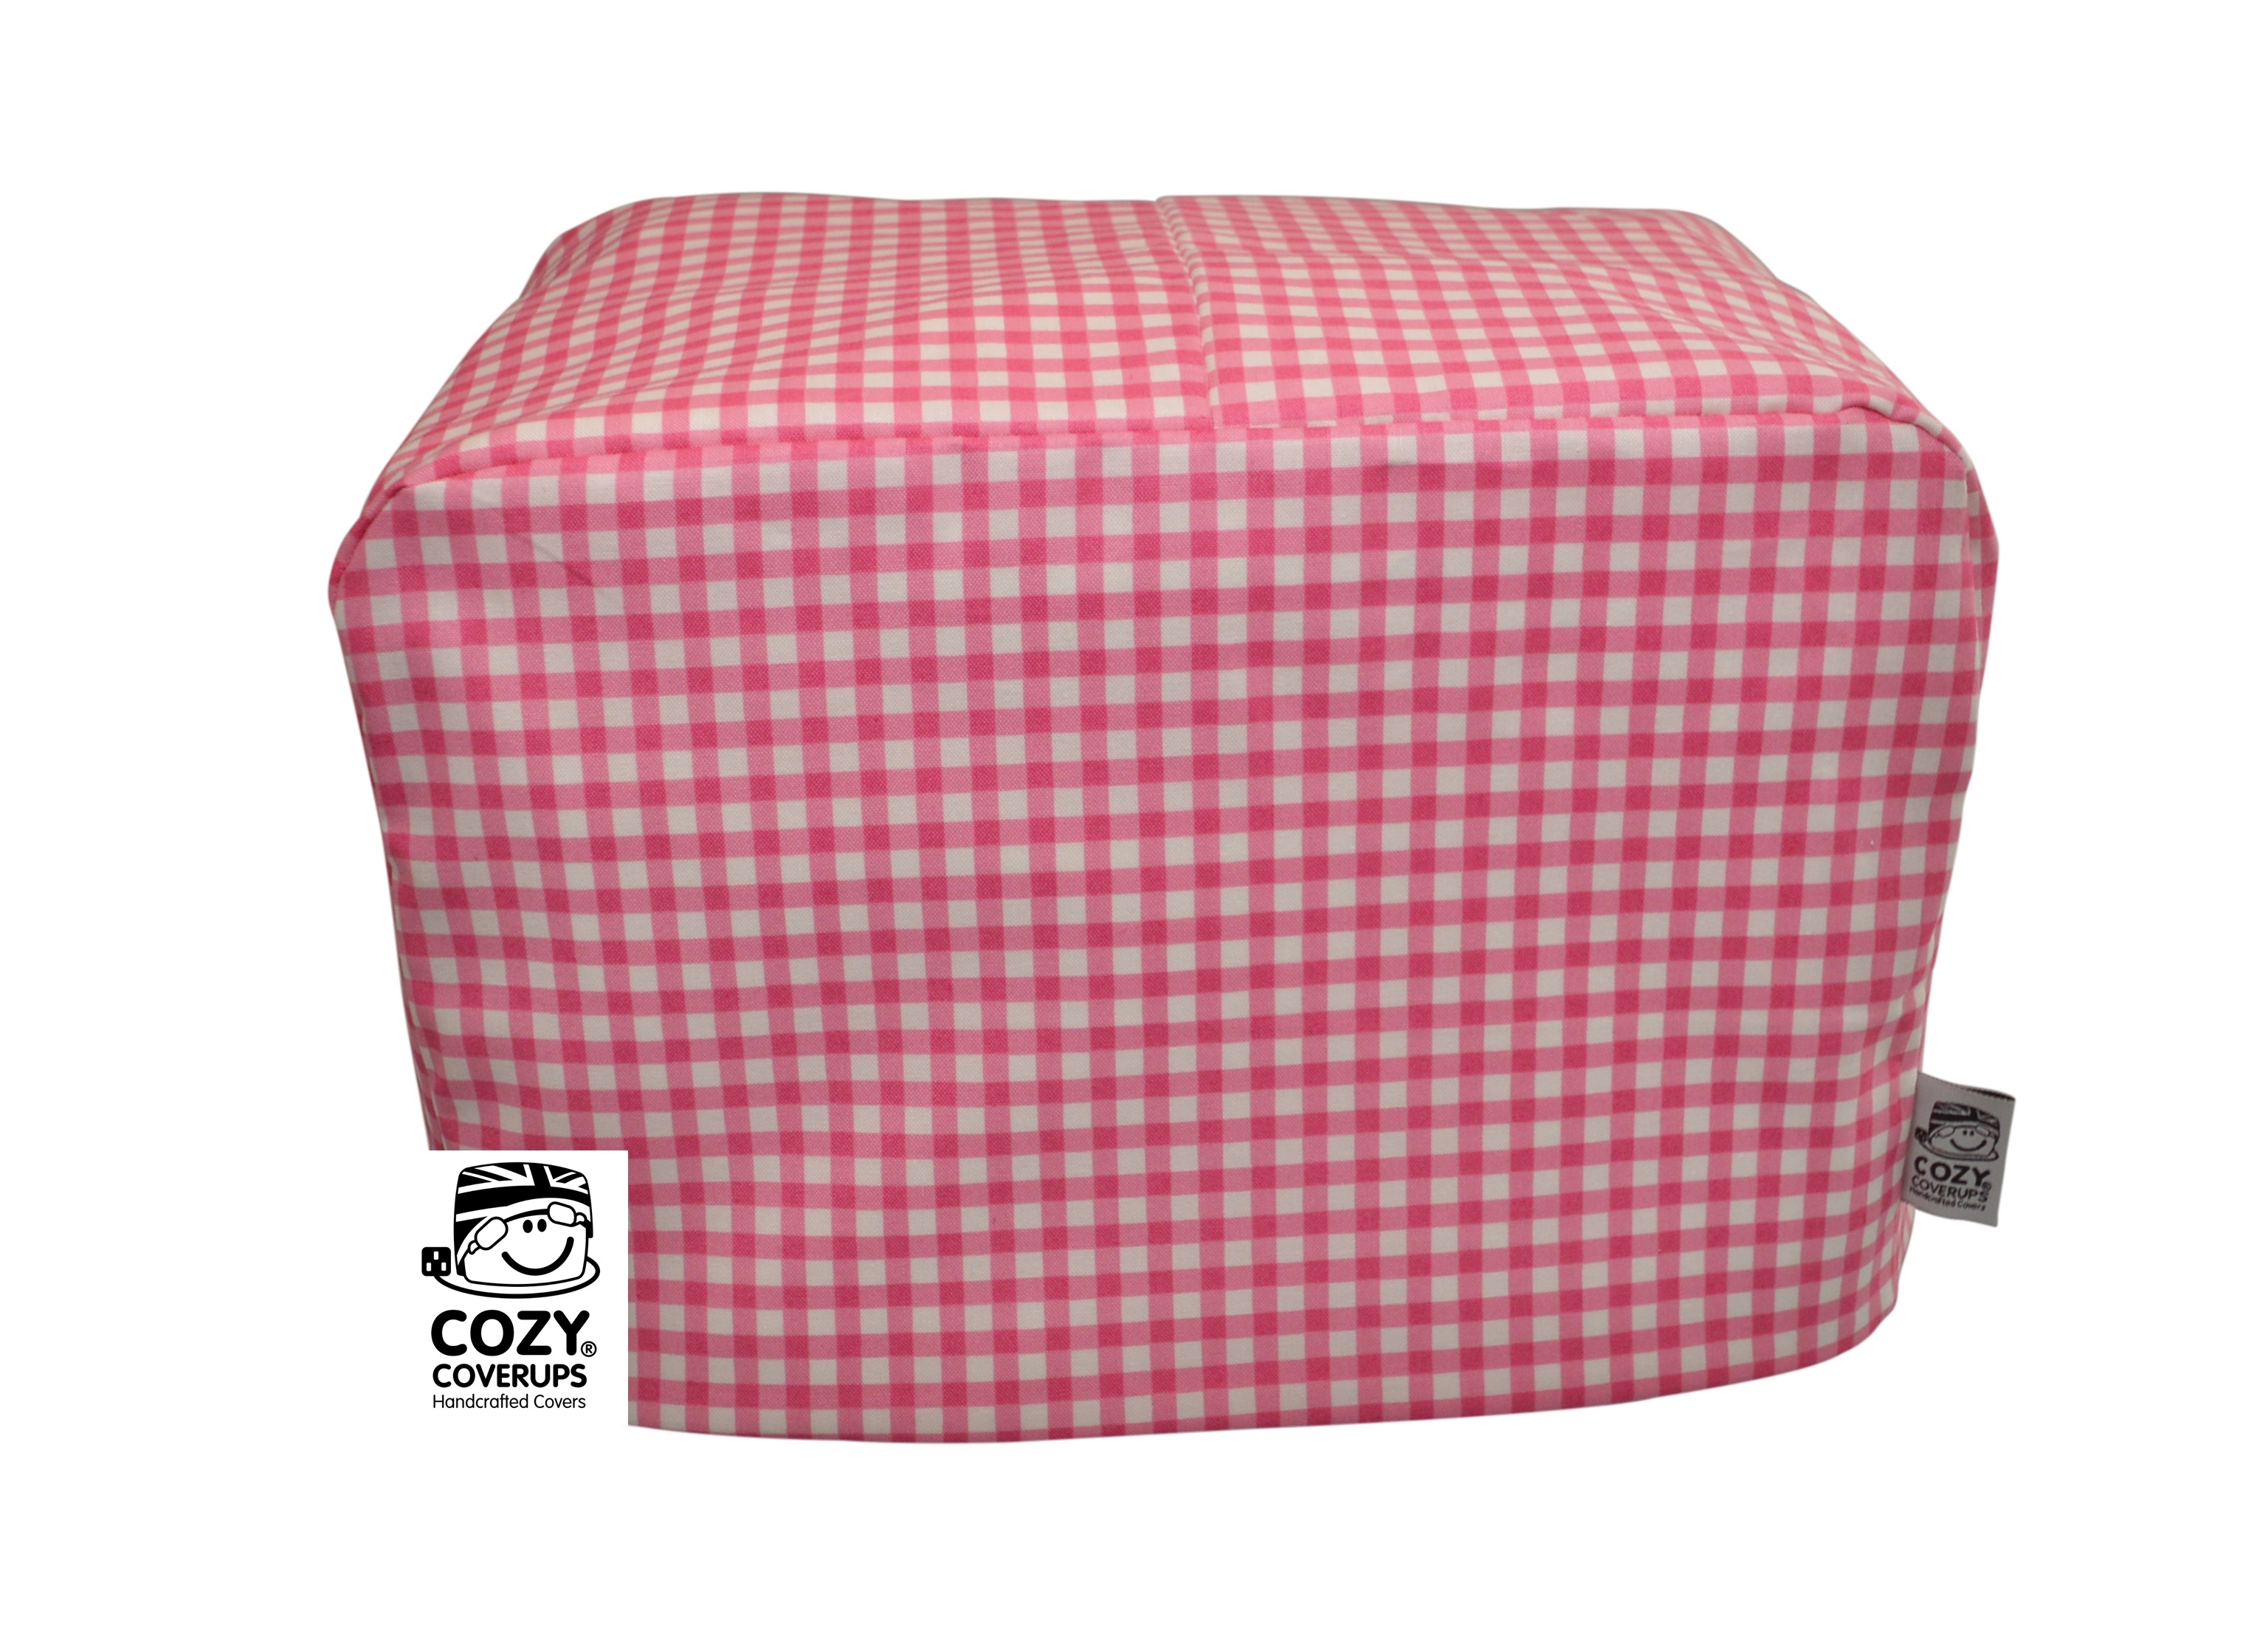 Bright pink gingham toaster image.jpg